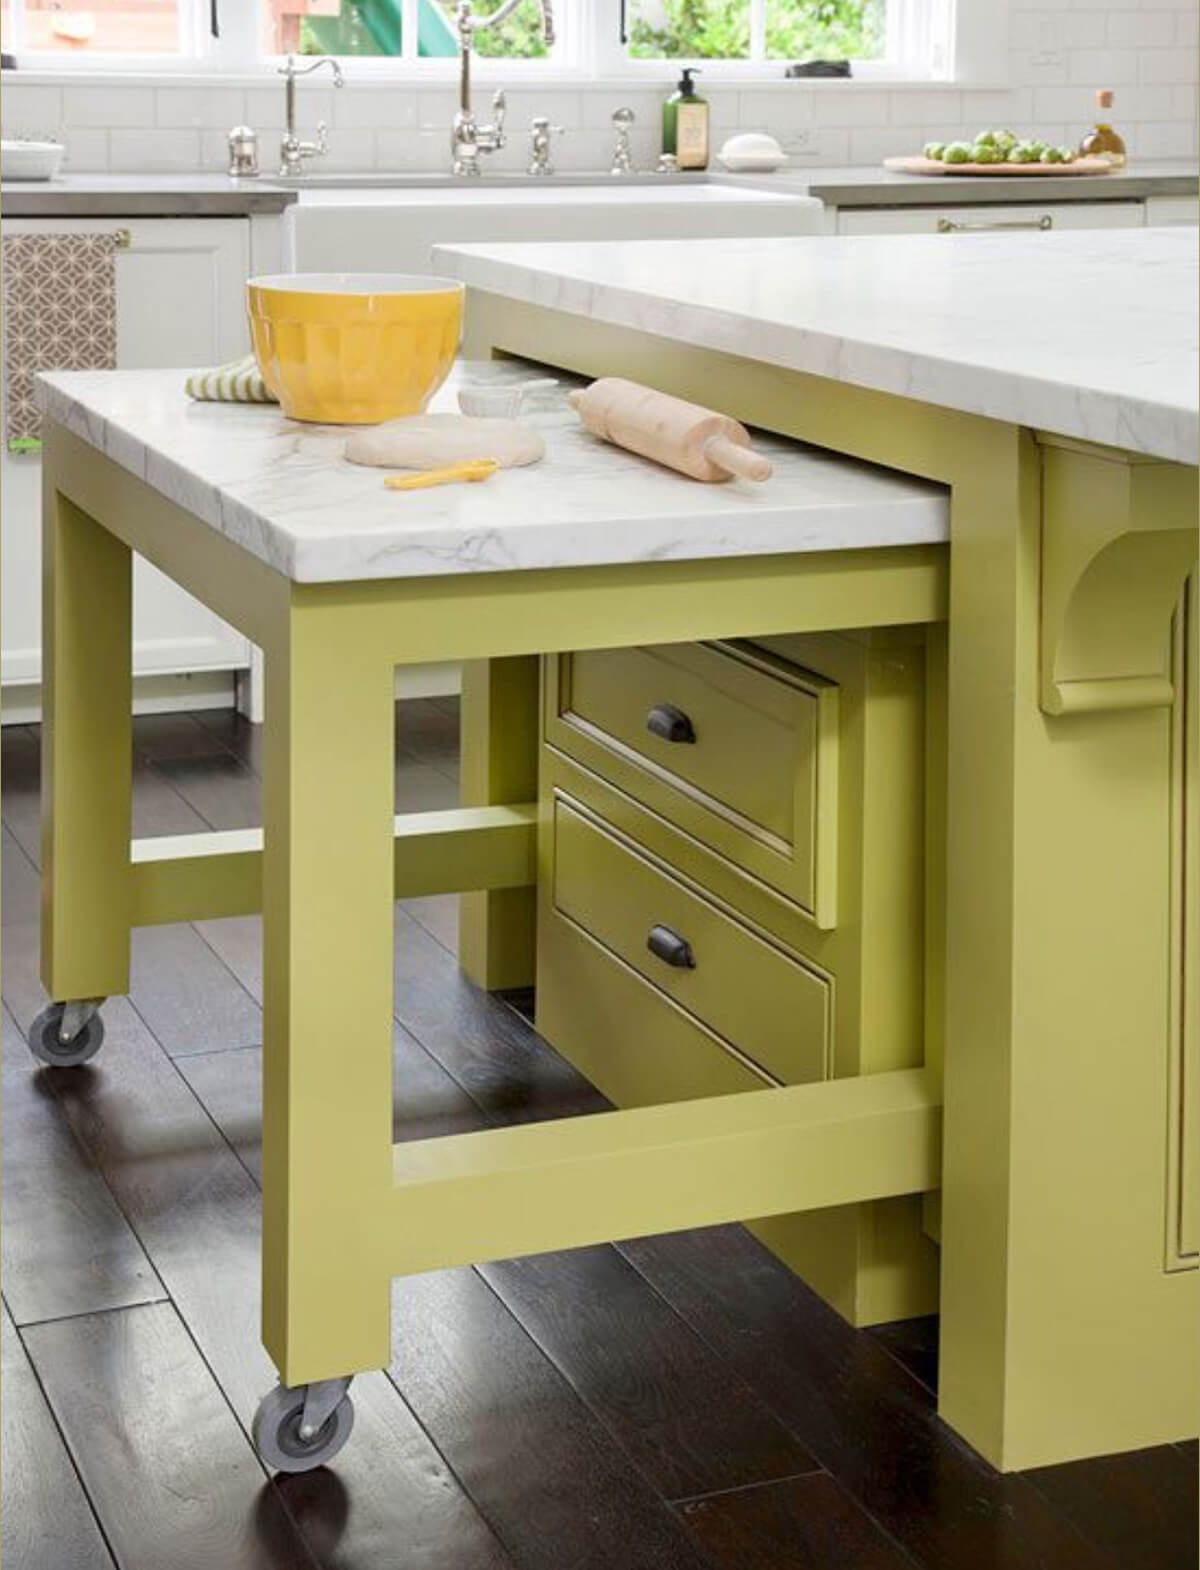 https://www.topdreamer.com/having-a-tiny-kitchen-then-small-kitchen-island-is-the-ultimate-space-saver-for-your-home/